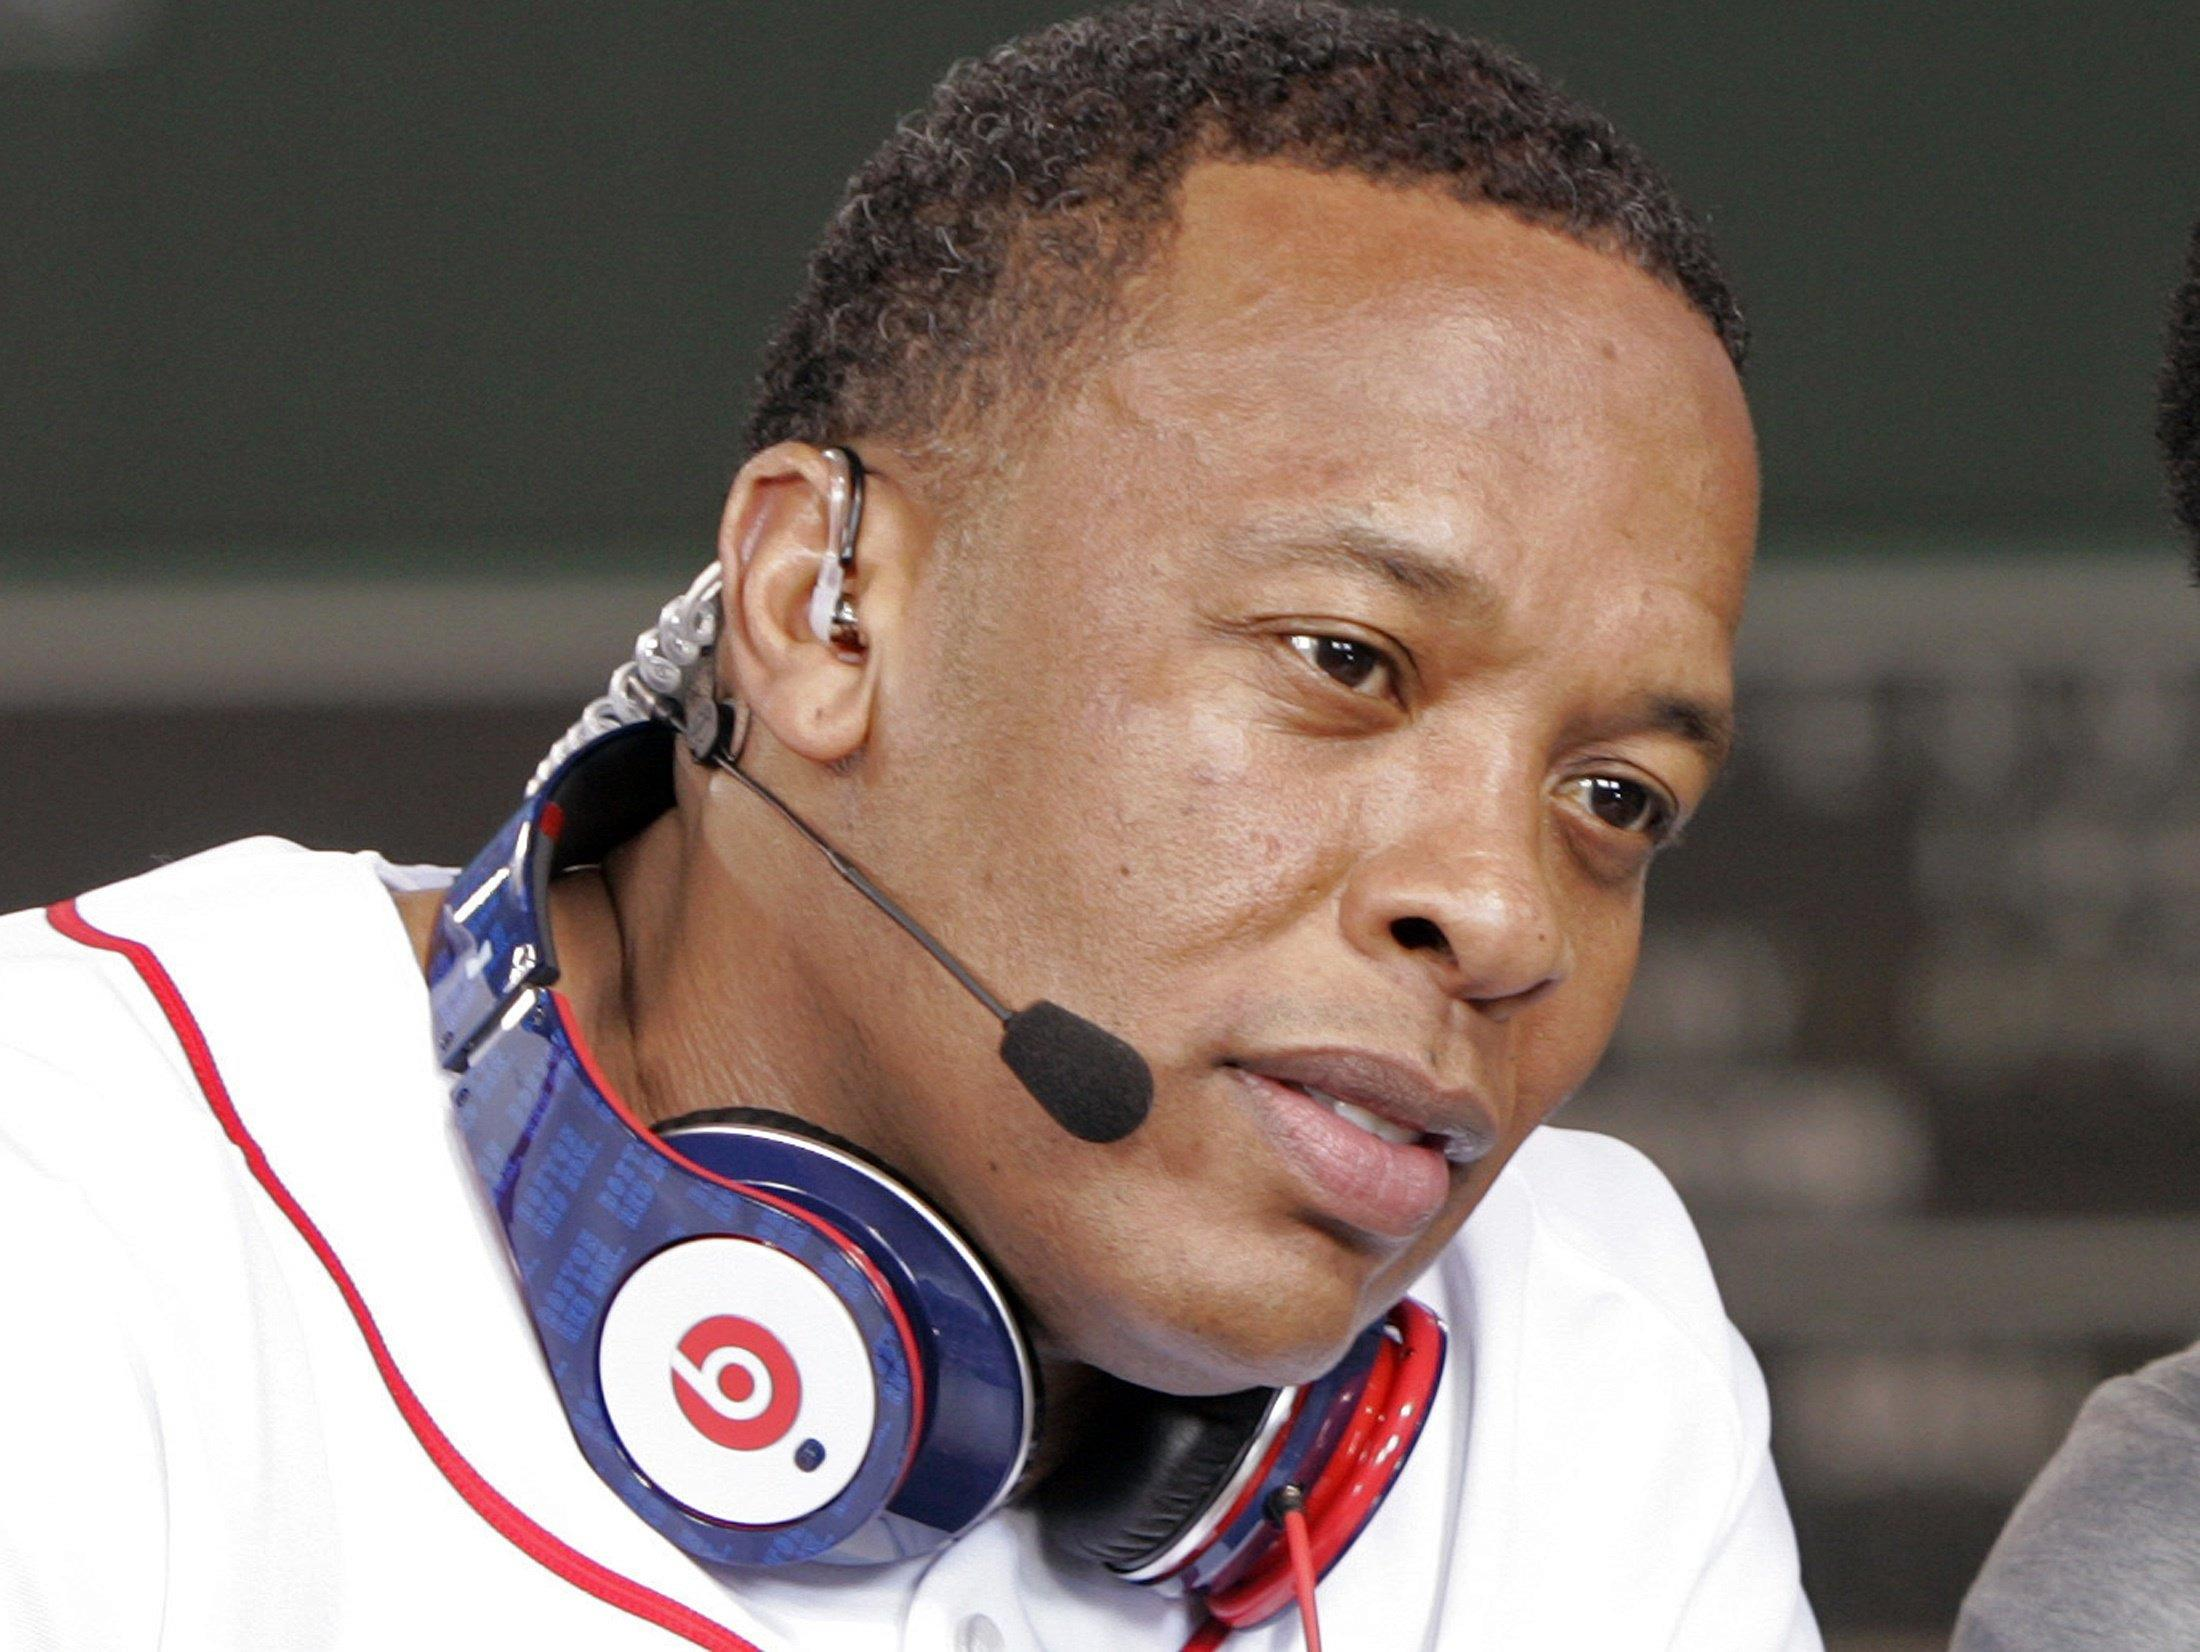 Recording artist Dr. Dre wears a pair of Beats headphones as he attends the MLB 2010 season opener in Boston.